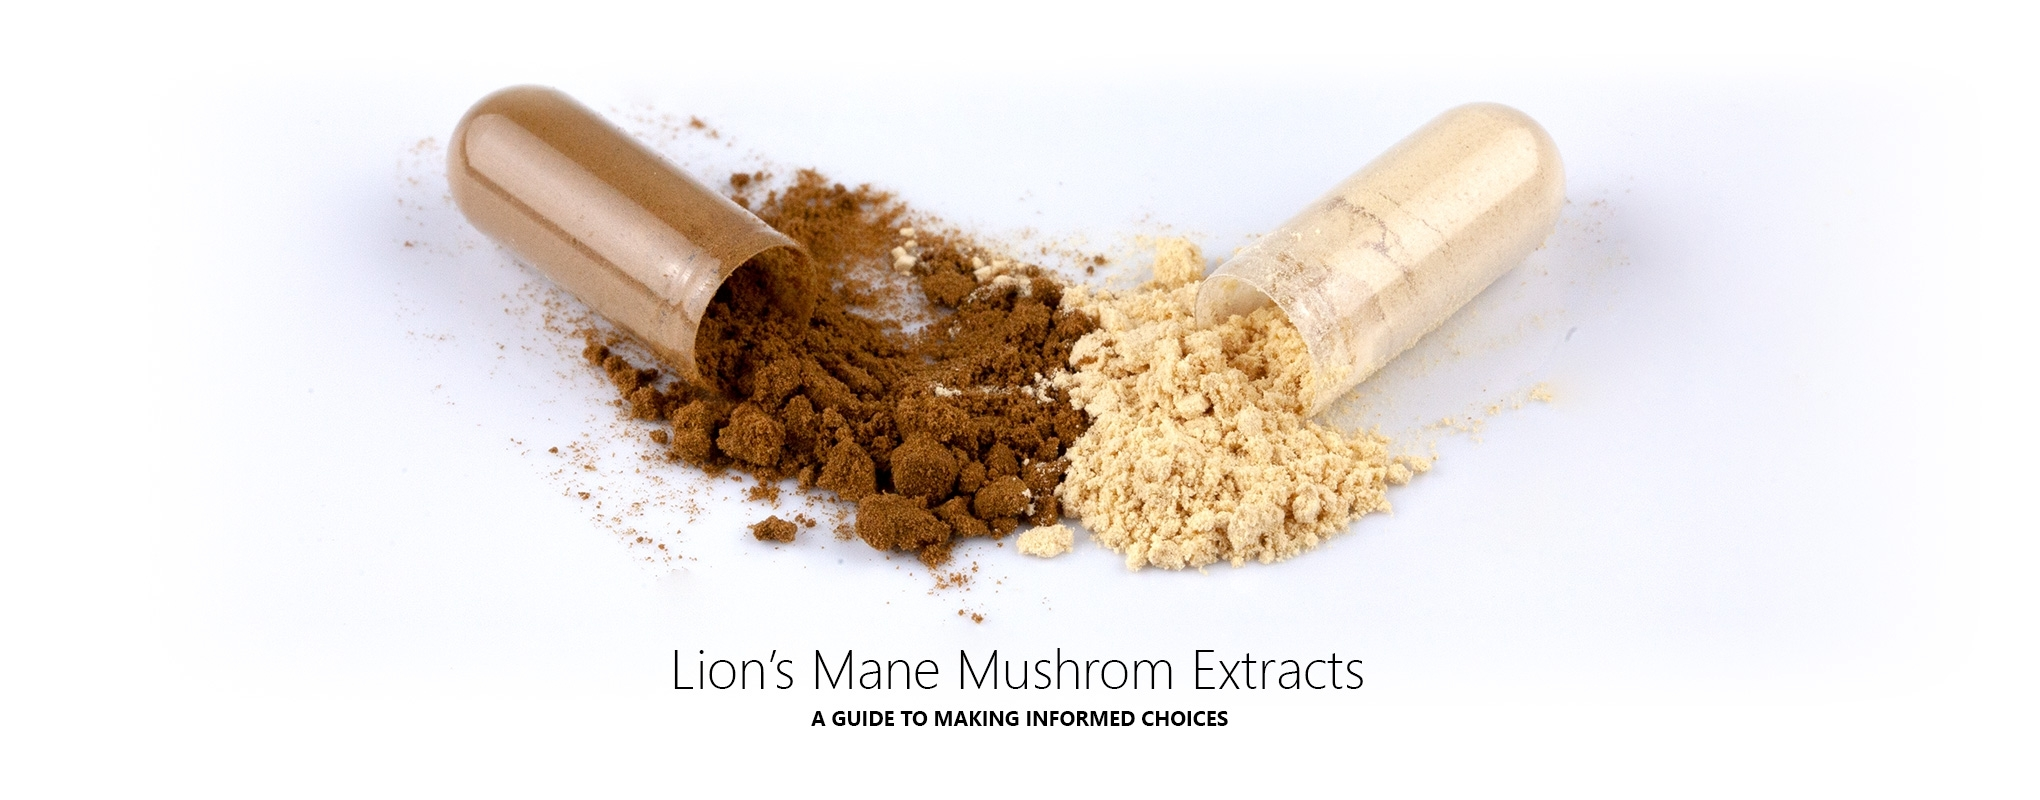 Our Guide to the Best Lions Mane Mushroom Extract Supplements in the UK